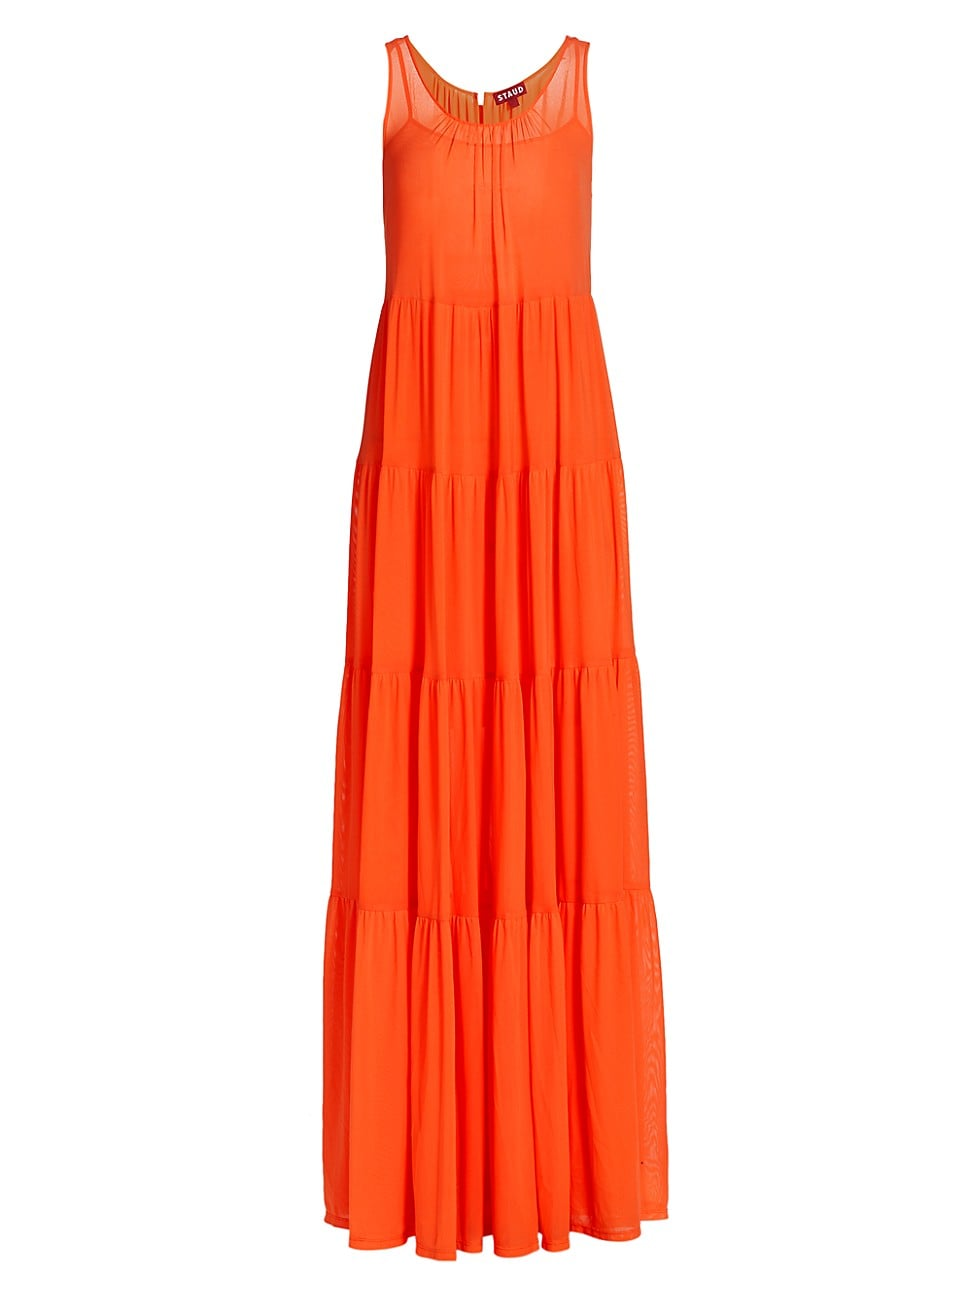 Staud WOMEN'S BENEDETTA MAXI DRESS